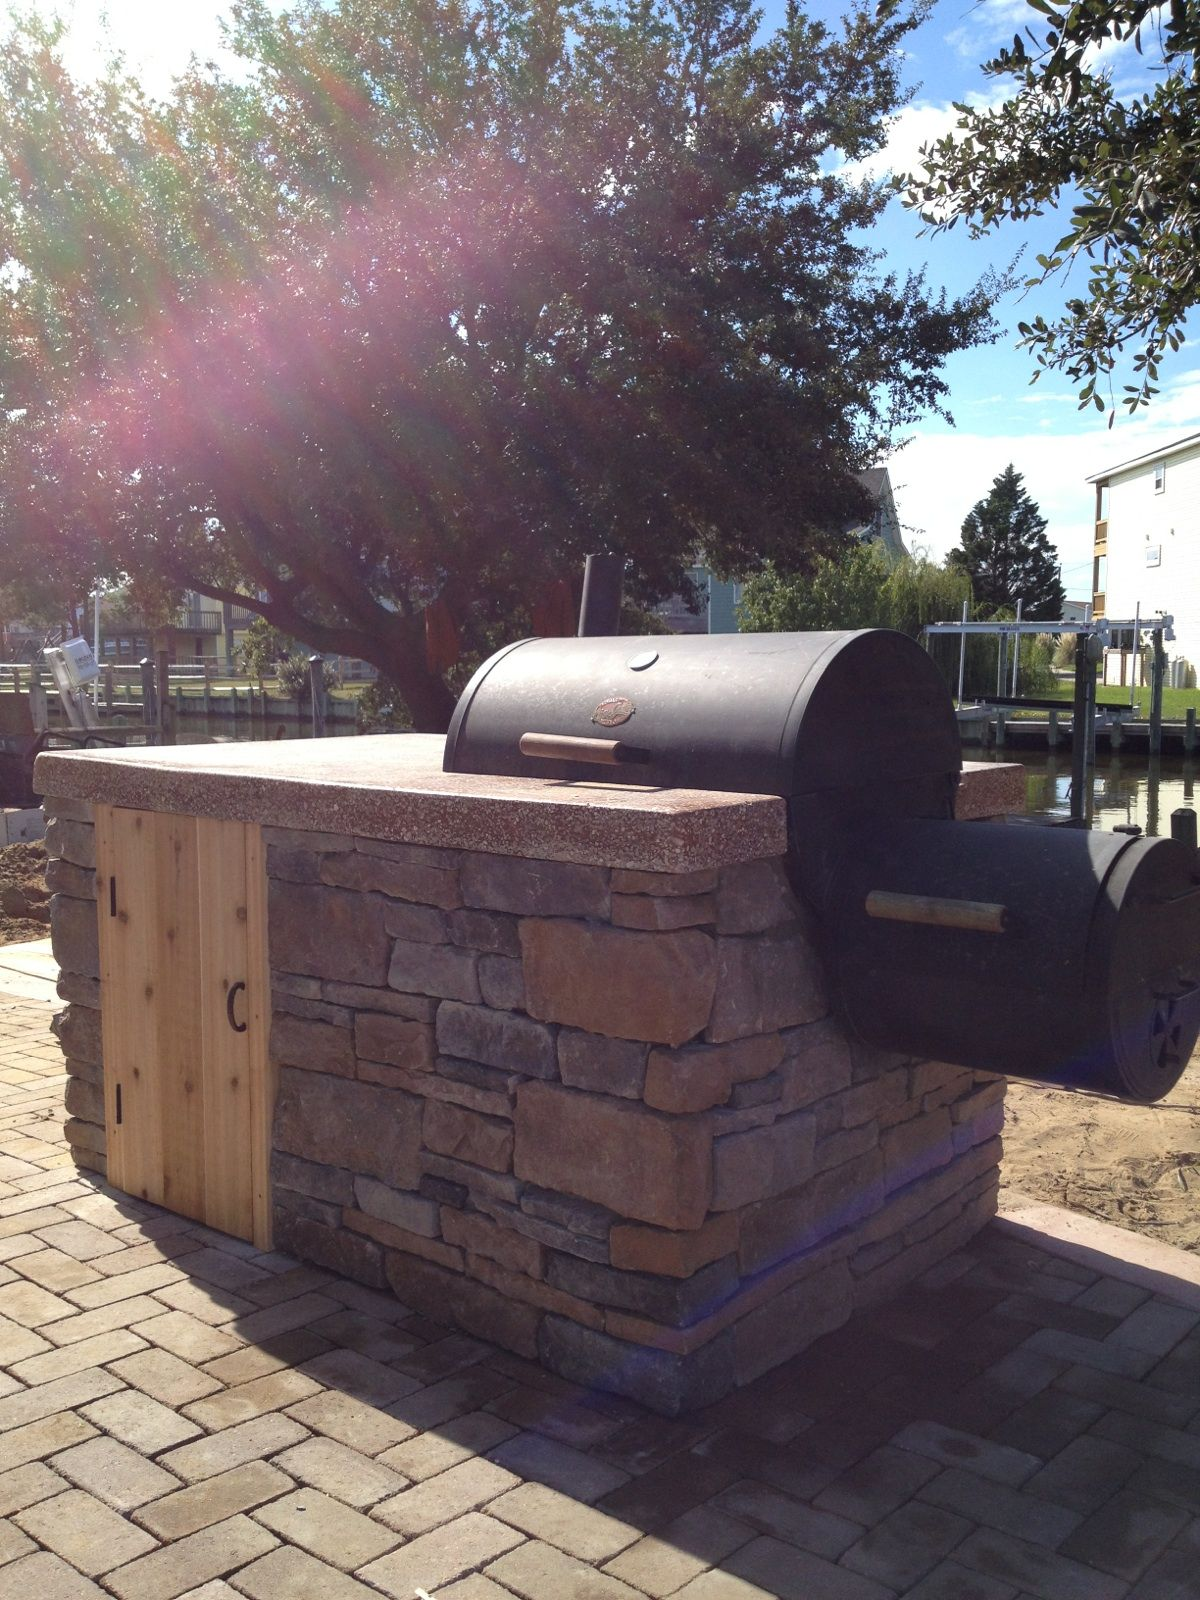 built in stone smoker island | sandscapes | pinterest | stone